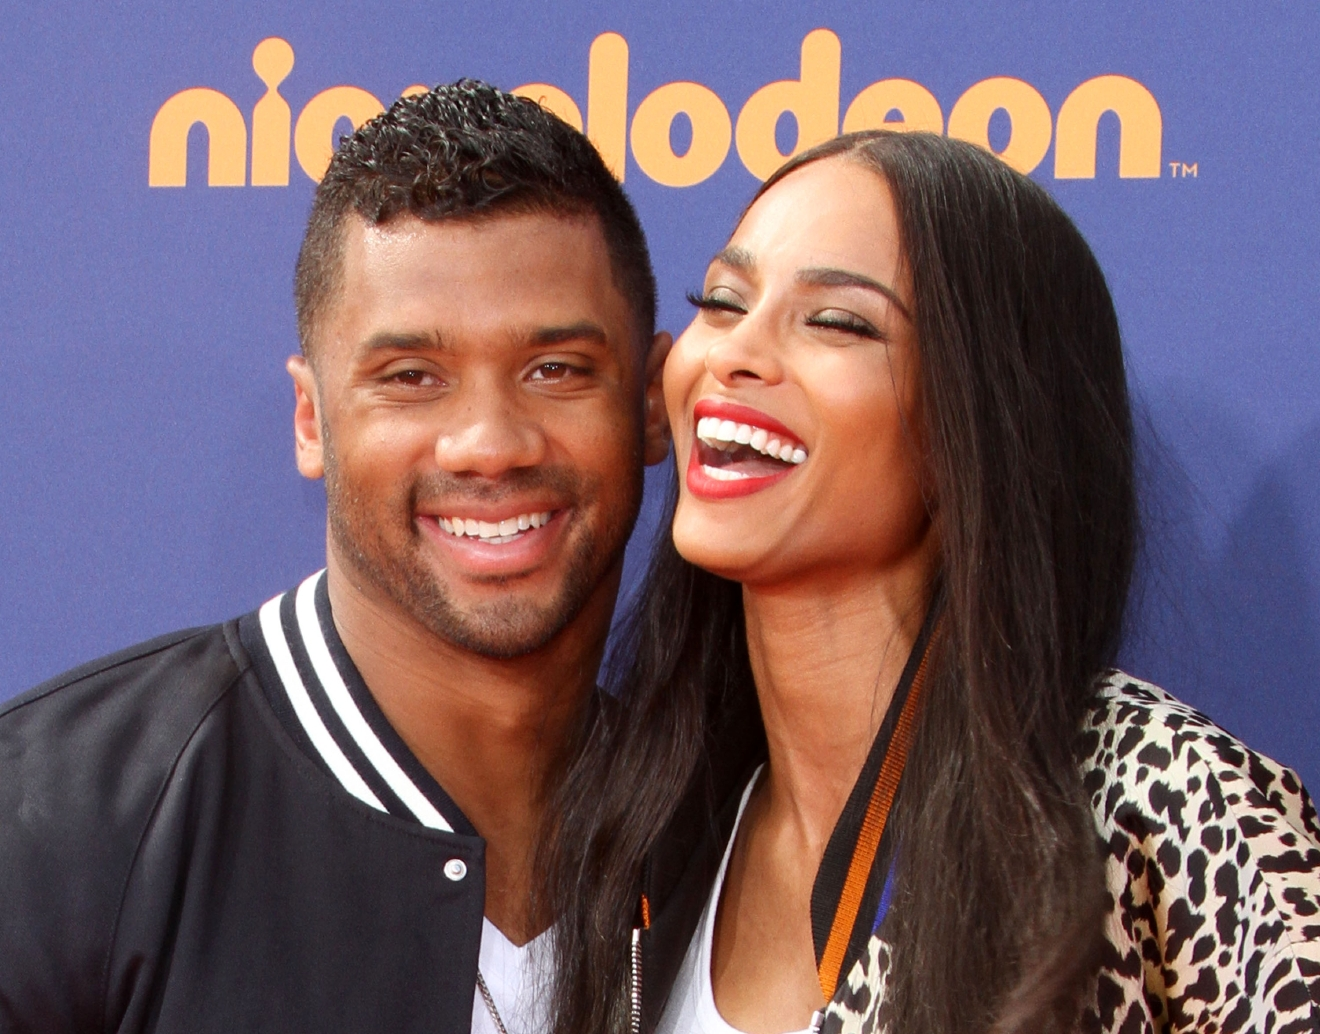 Nickelodeon�s Kids� Choice Sports 2015 Awards held at UCLA�s Pauley Pavillion  Featuring: Russell Wilson, Ciara Where: Los Angeles, California, United States When: 16 Jul 2015 Credit: Adriana M. Barraza/WENN.com